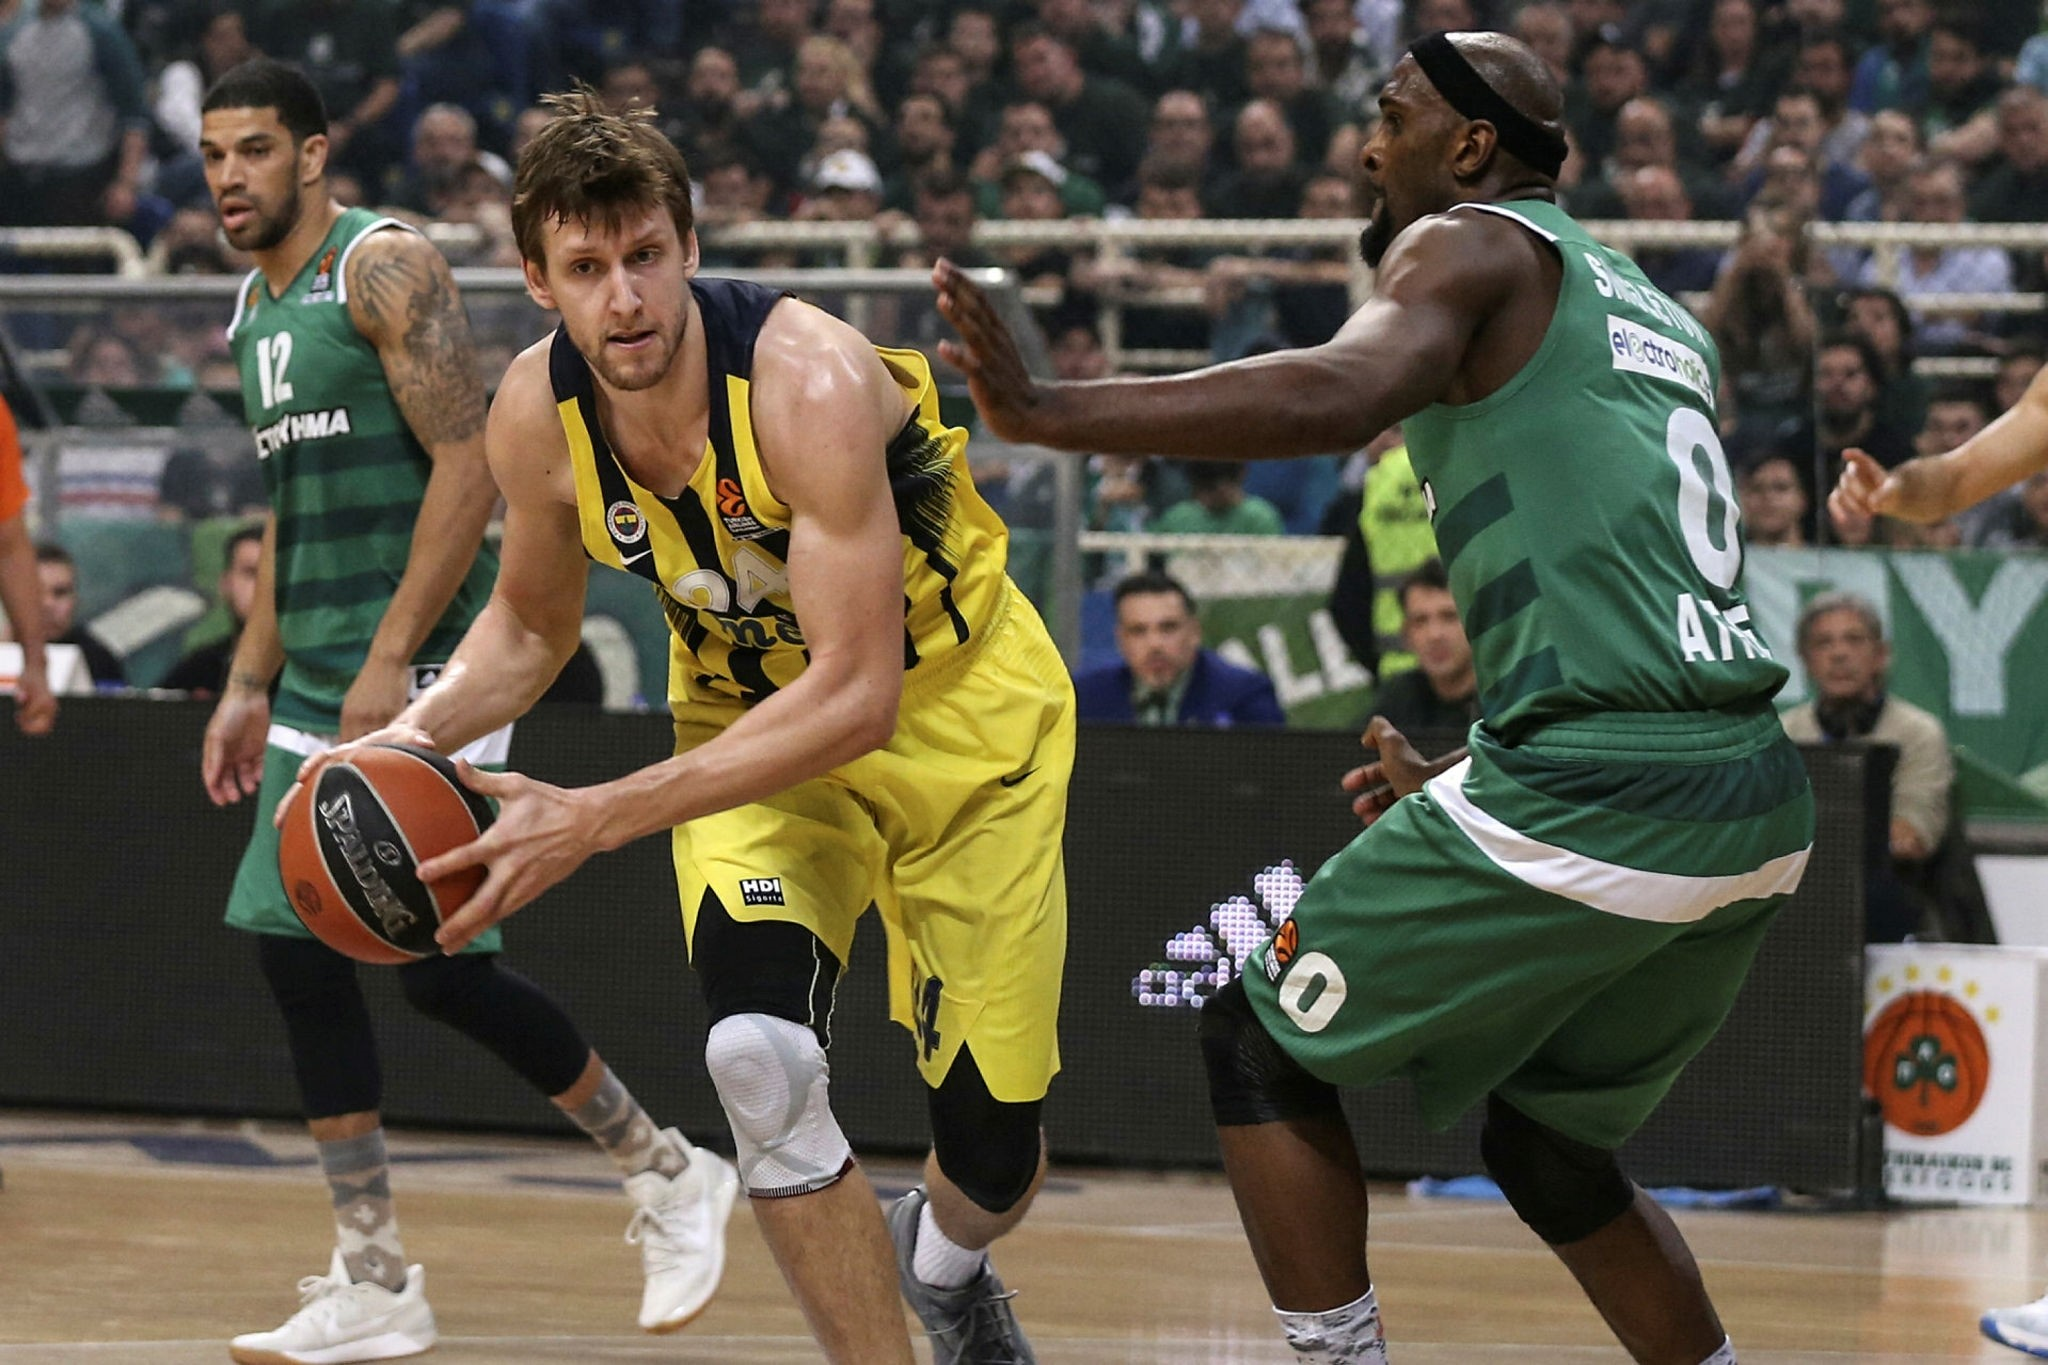 Fenerbahu00e7e's Jan Vesely during the match (AA Photo)